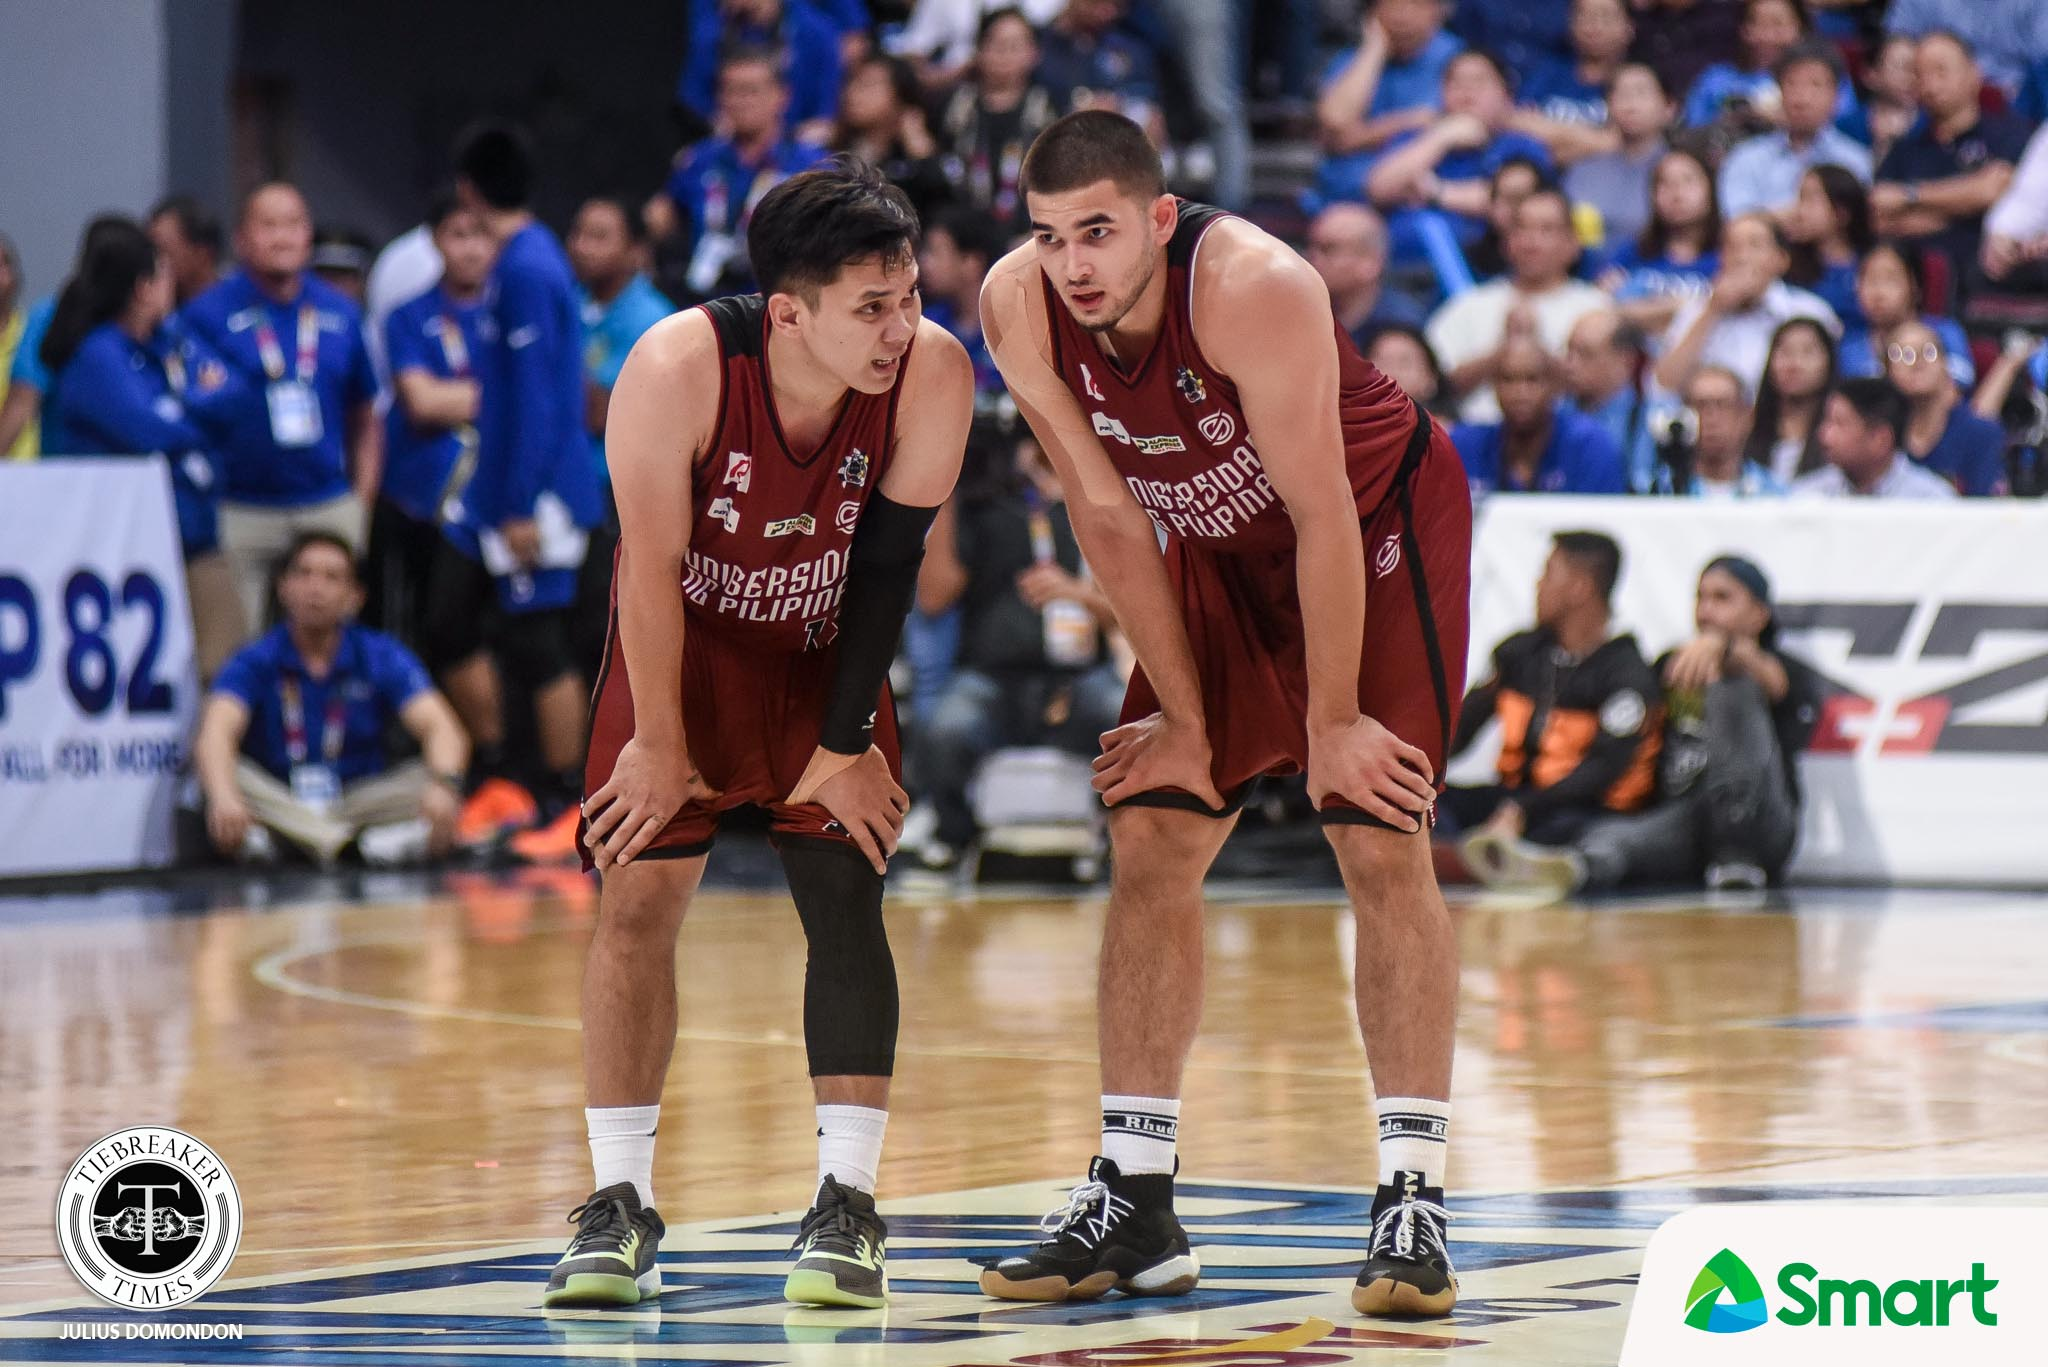 Tiebreaker Times Ateneo loss showed that UP needs to learn composure, says Kobe Paras Basketball News UAAP UP  UP Men's Basketball UAAP Season 82 Men's Basketball UAAP Season 82 Kobe Paras